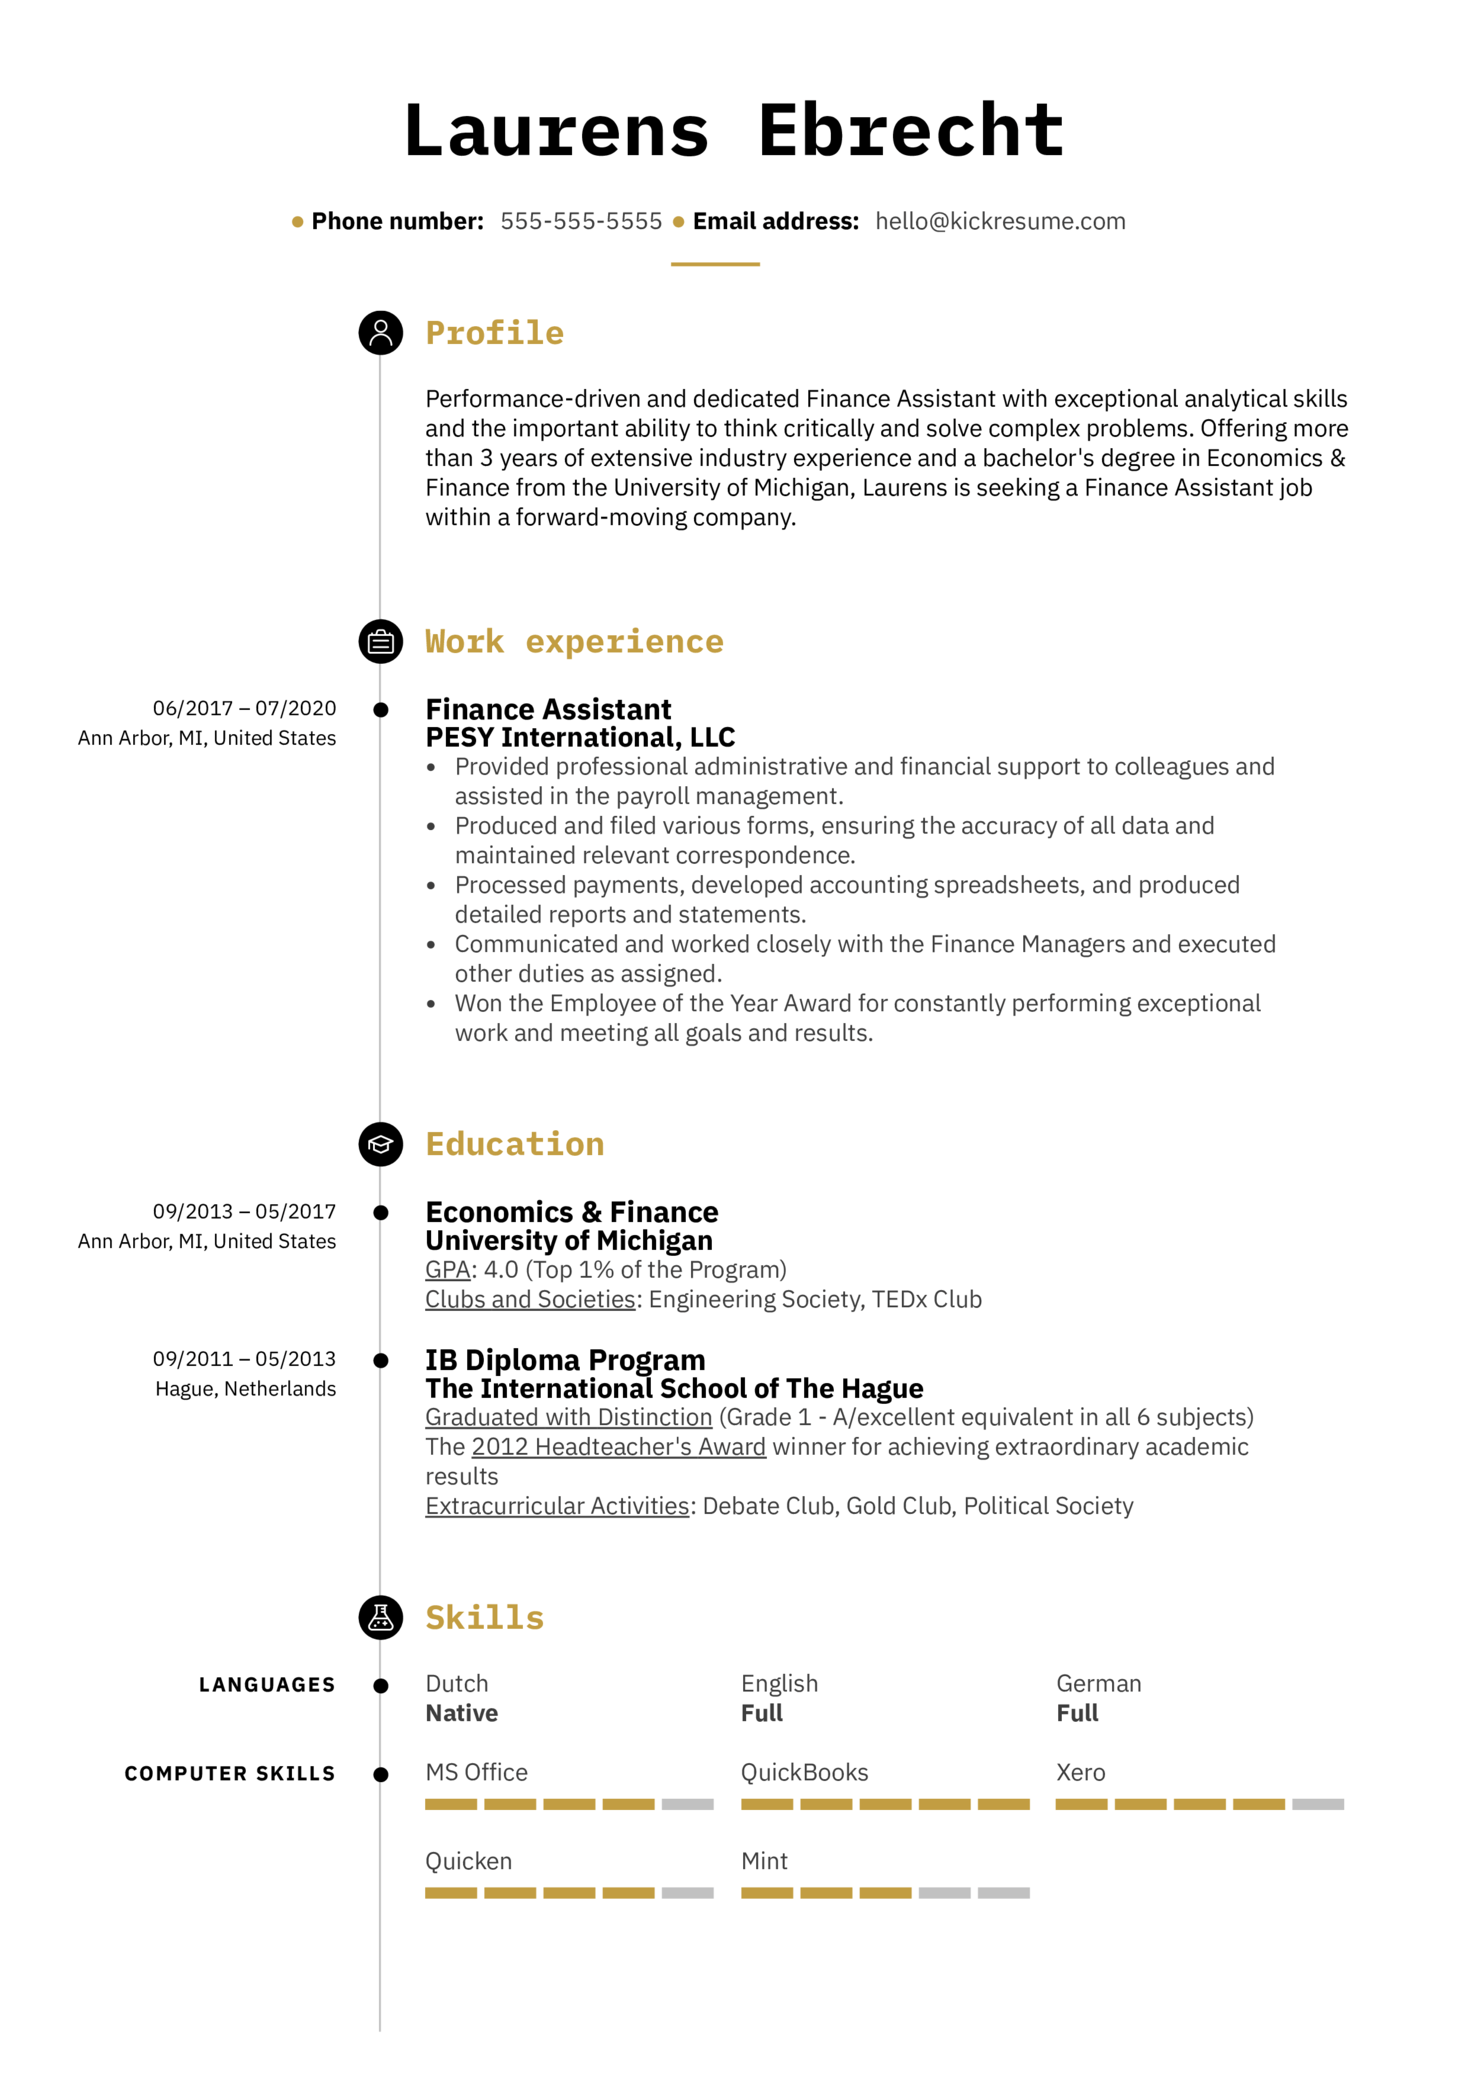 Resume for Job Application Example (Part 1)